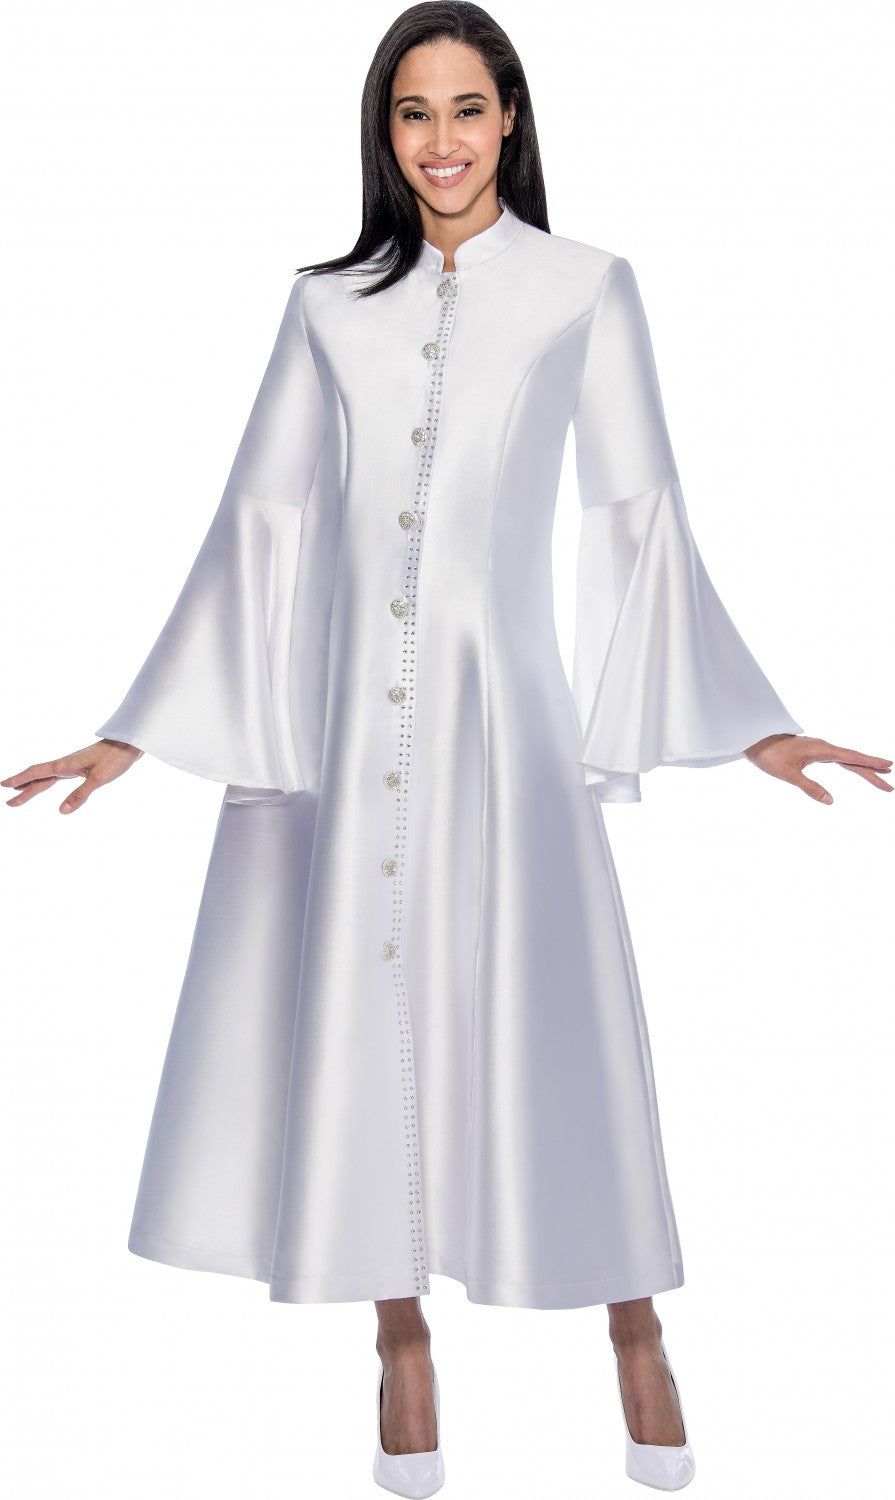 Women Church Robes | Church Suits For Less